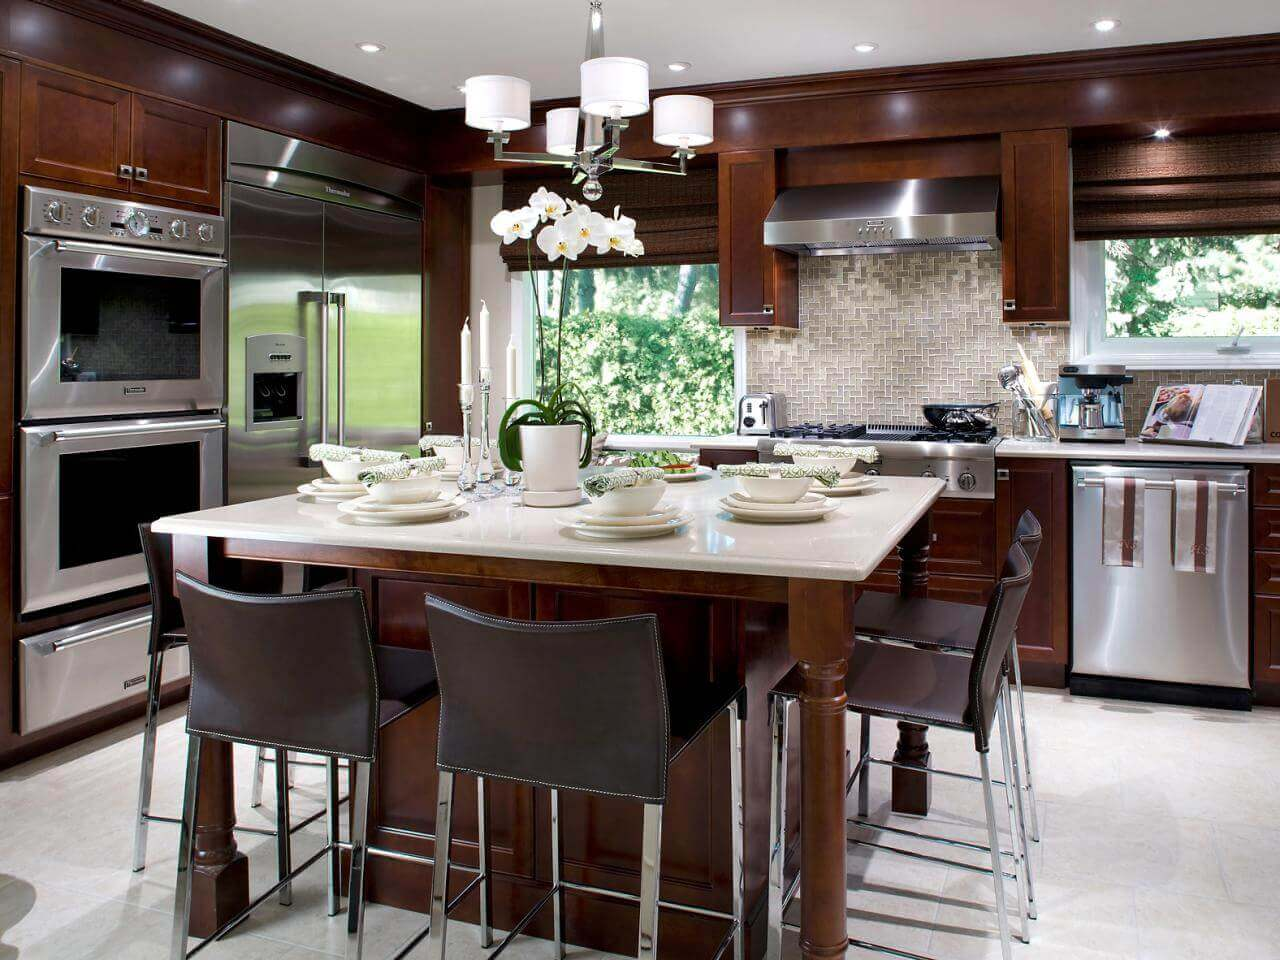 68 deluxe custom kitchen island ideas jaw dropping designs - Kitchen island with seating for 6 ...